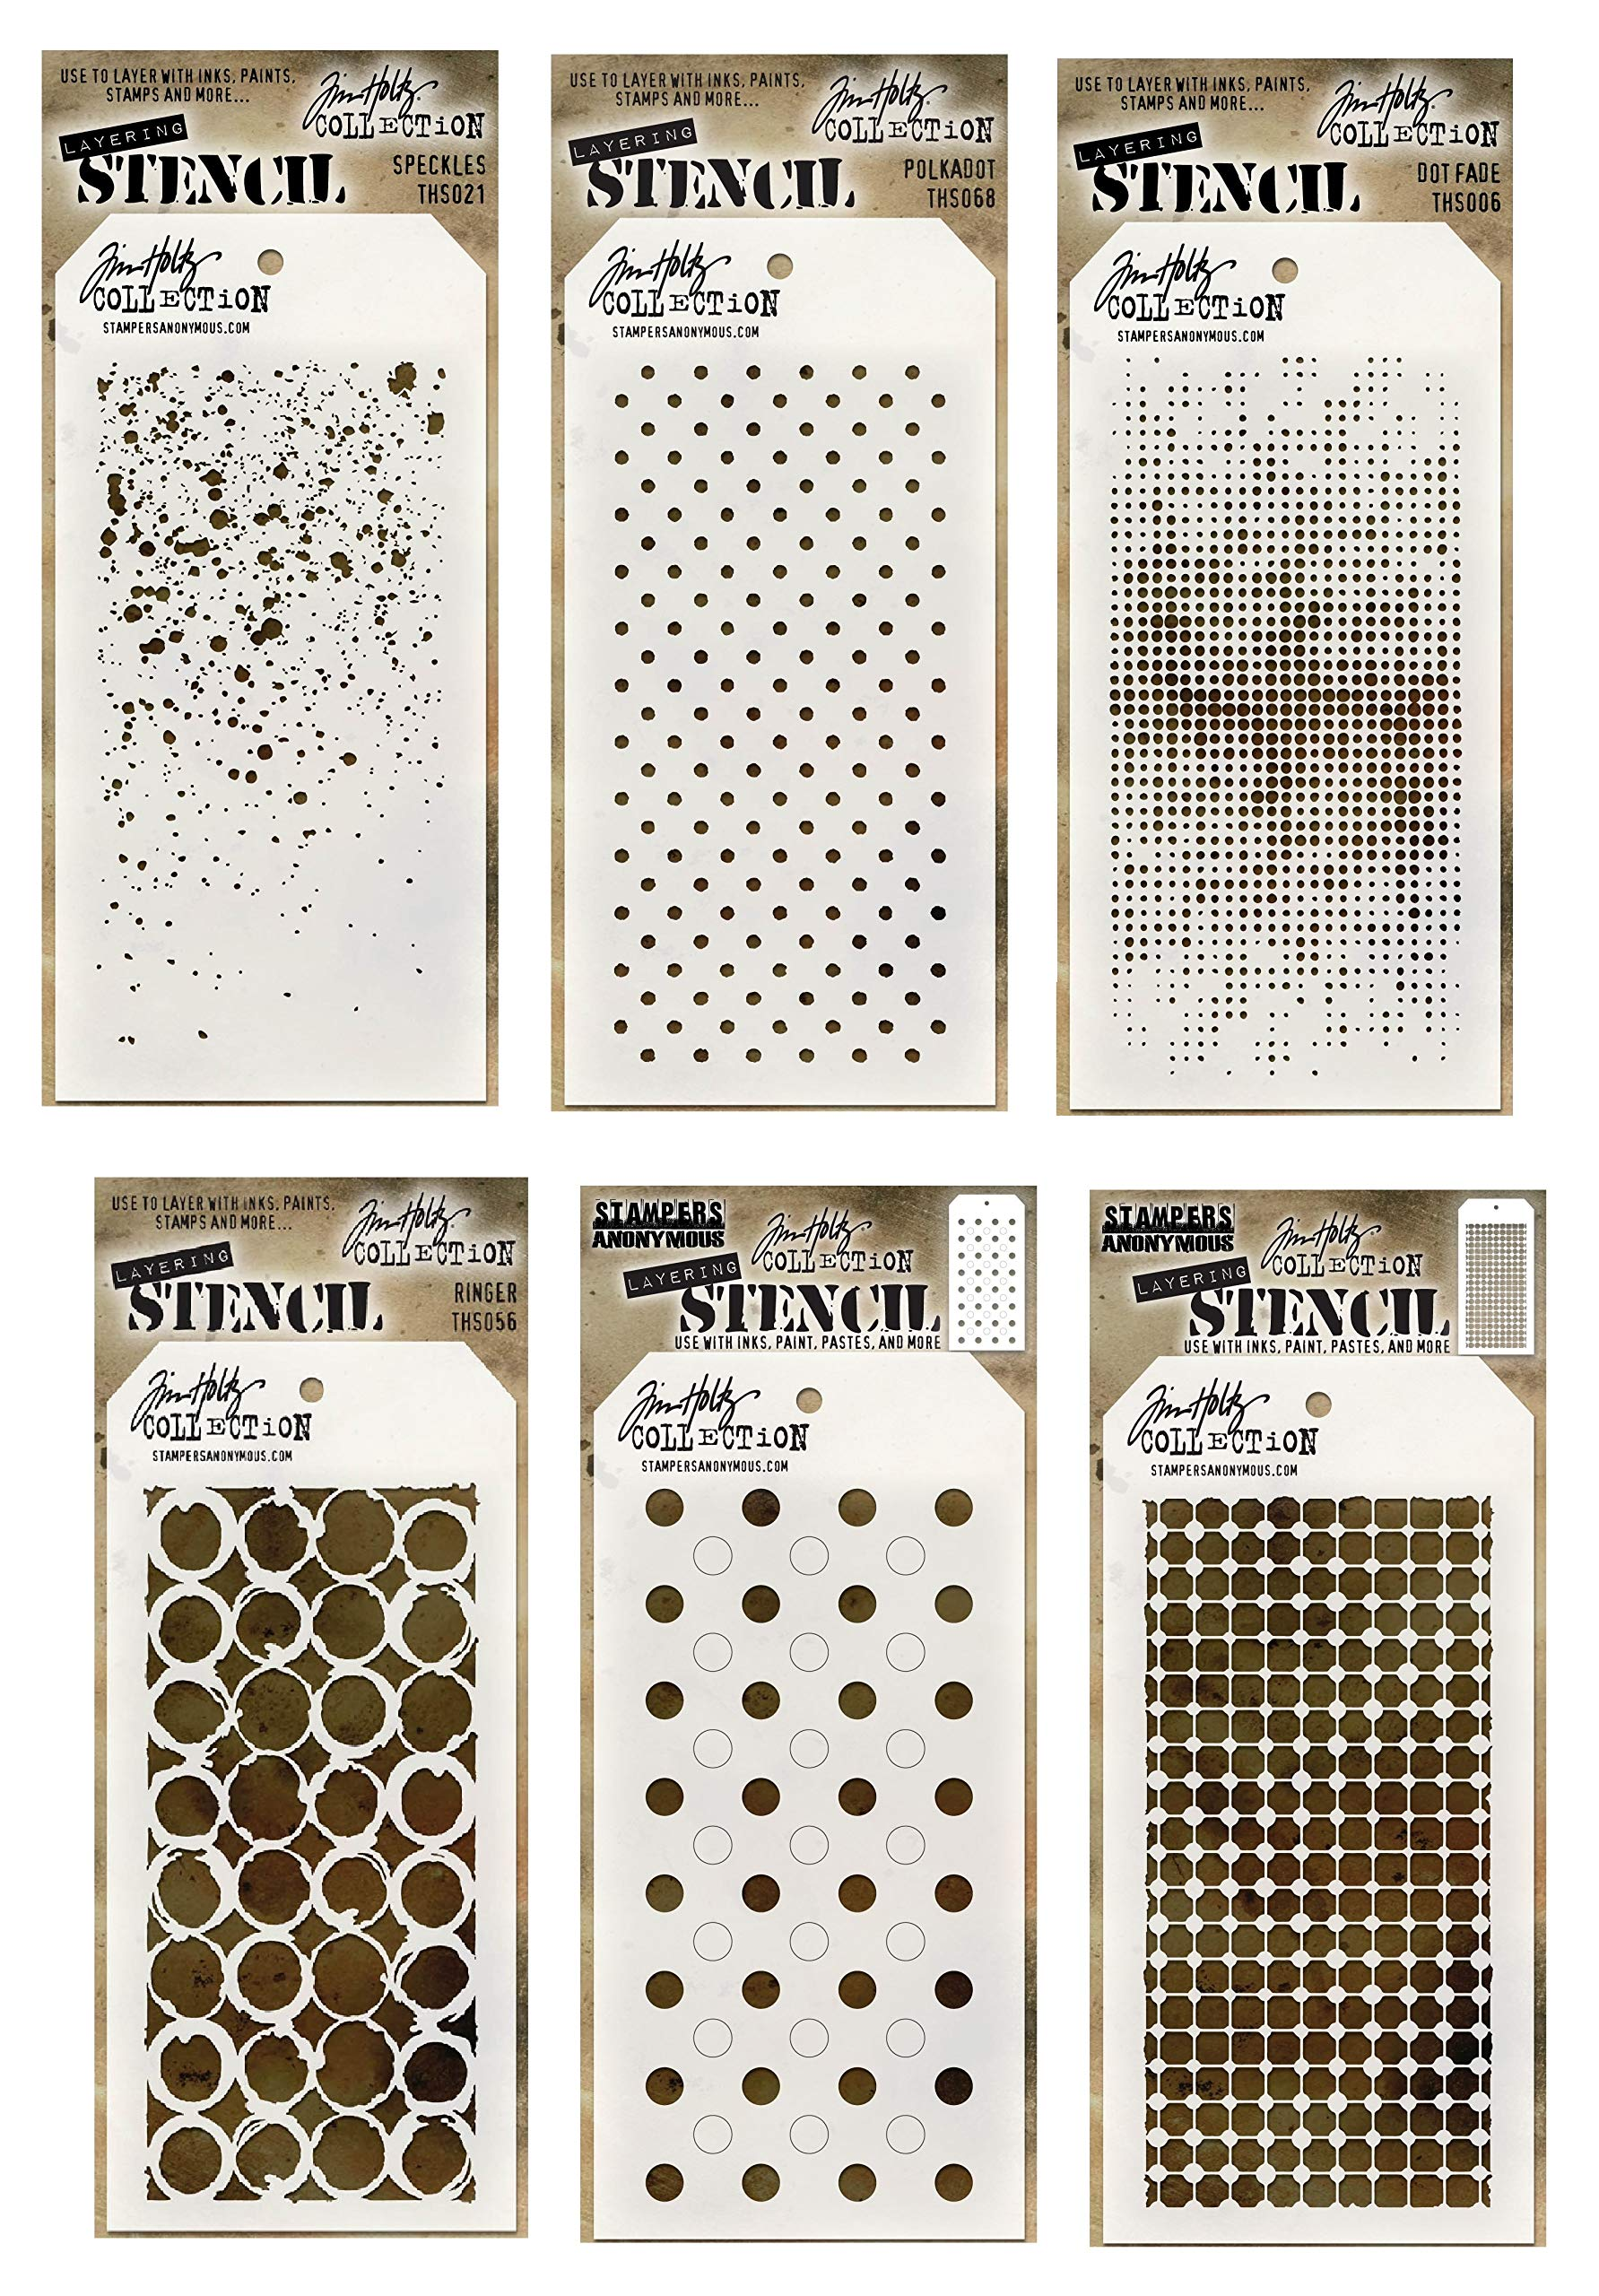 6 Tim Holtz Mixed Media Layered Stencils Set | Shifter Dots, Speckles, Polka Dot, Fade, Rings, Grid Designs | Templates for Arts, Card Making, Journaling, Scrapbooking | by Stampers Anonymous by Generic